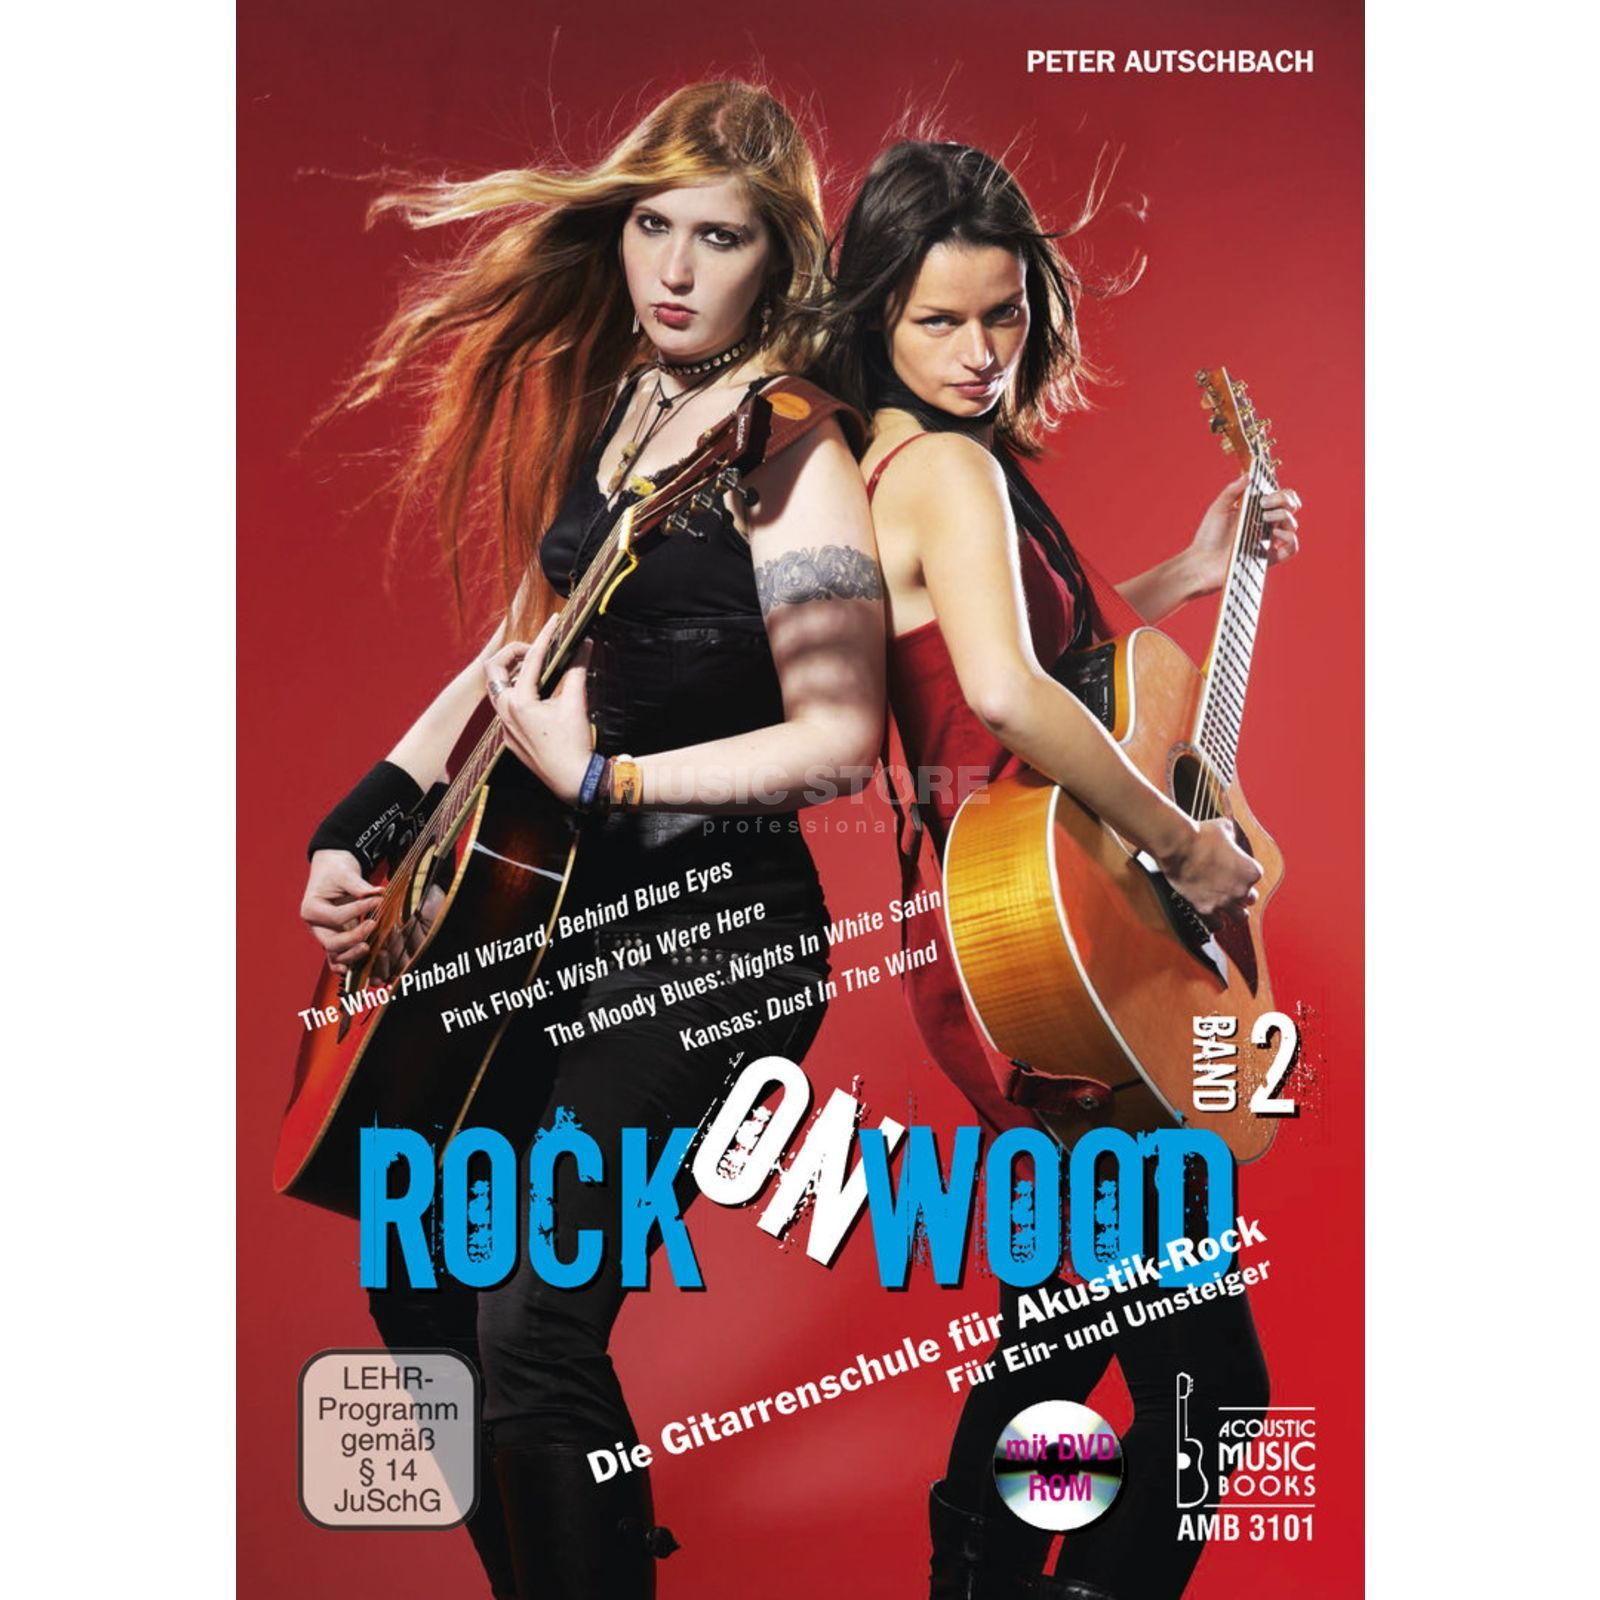 Acoustic Music Books Rock On Wood 2, Gitarrenschule Peter Autschbach, DVD/ROM Produktbillede